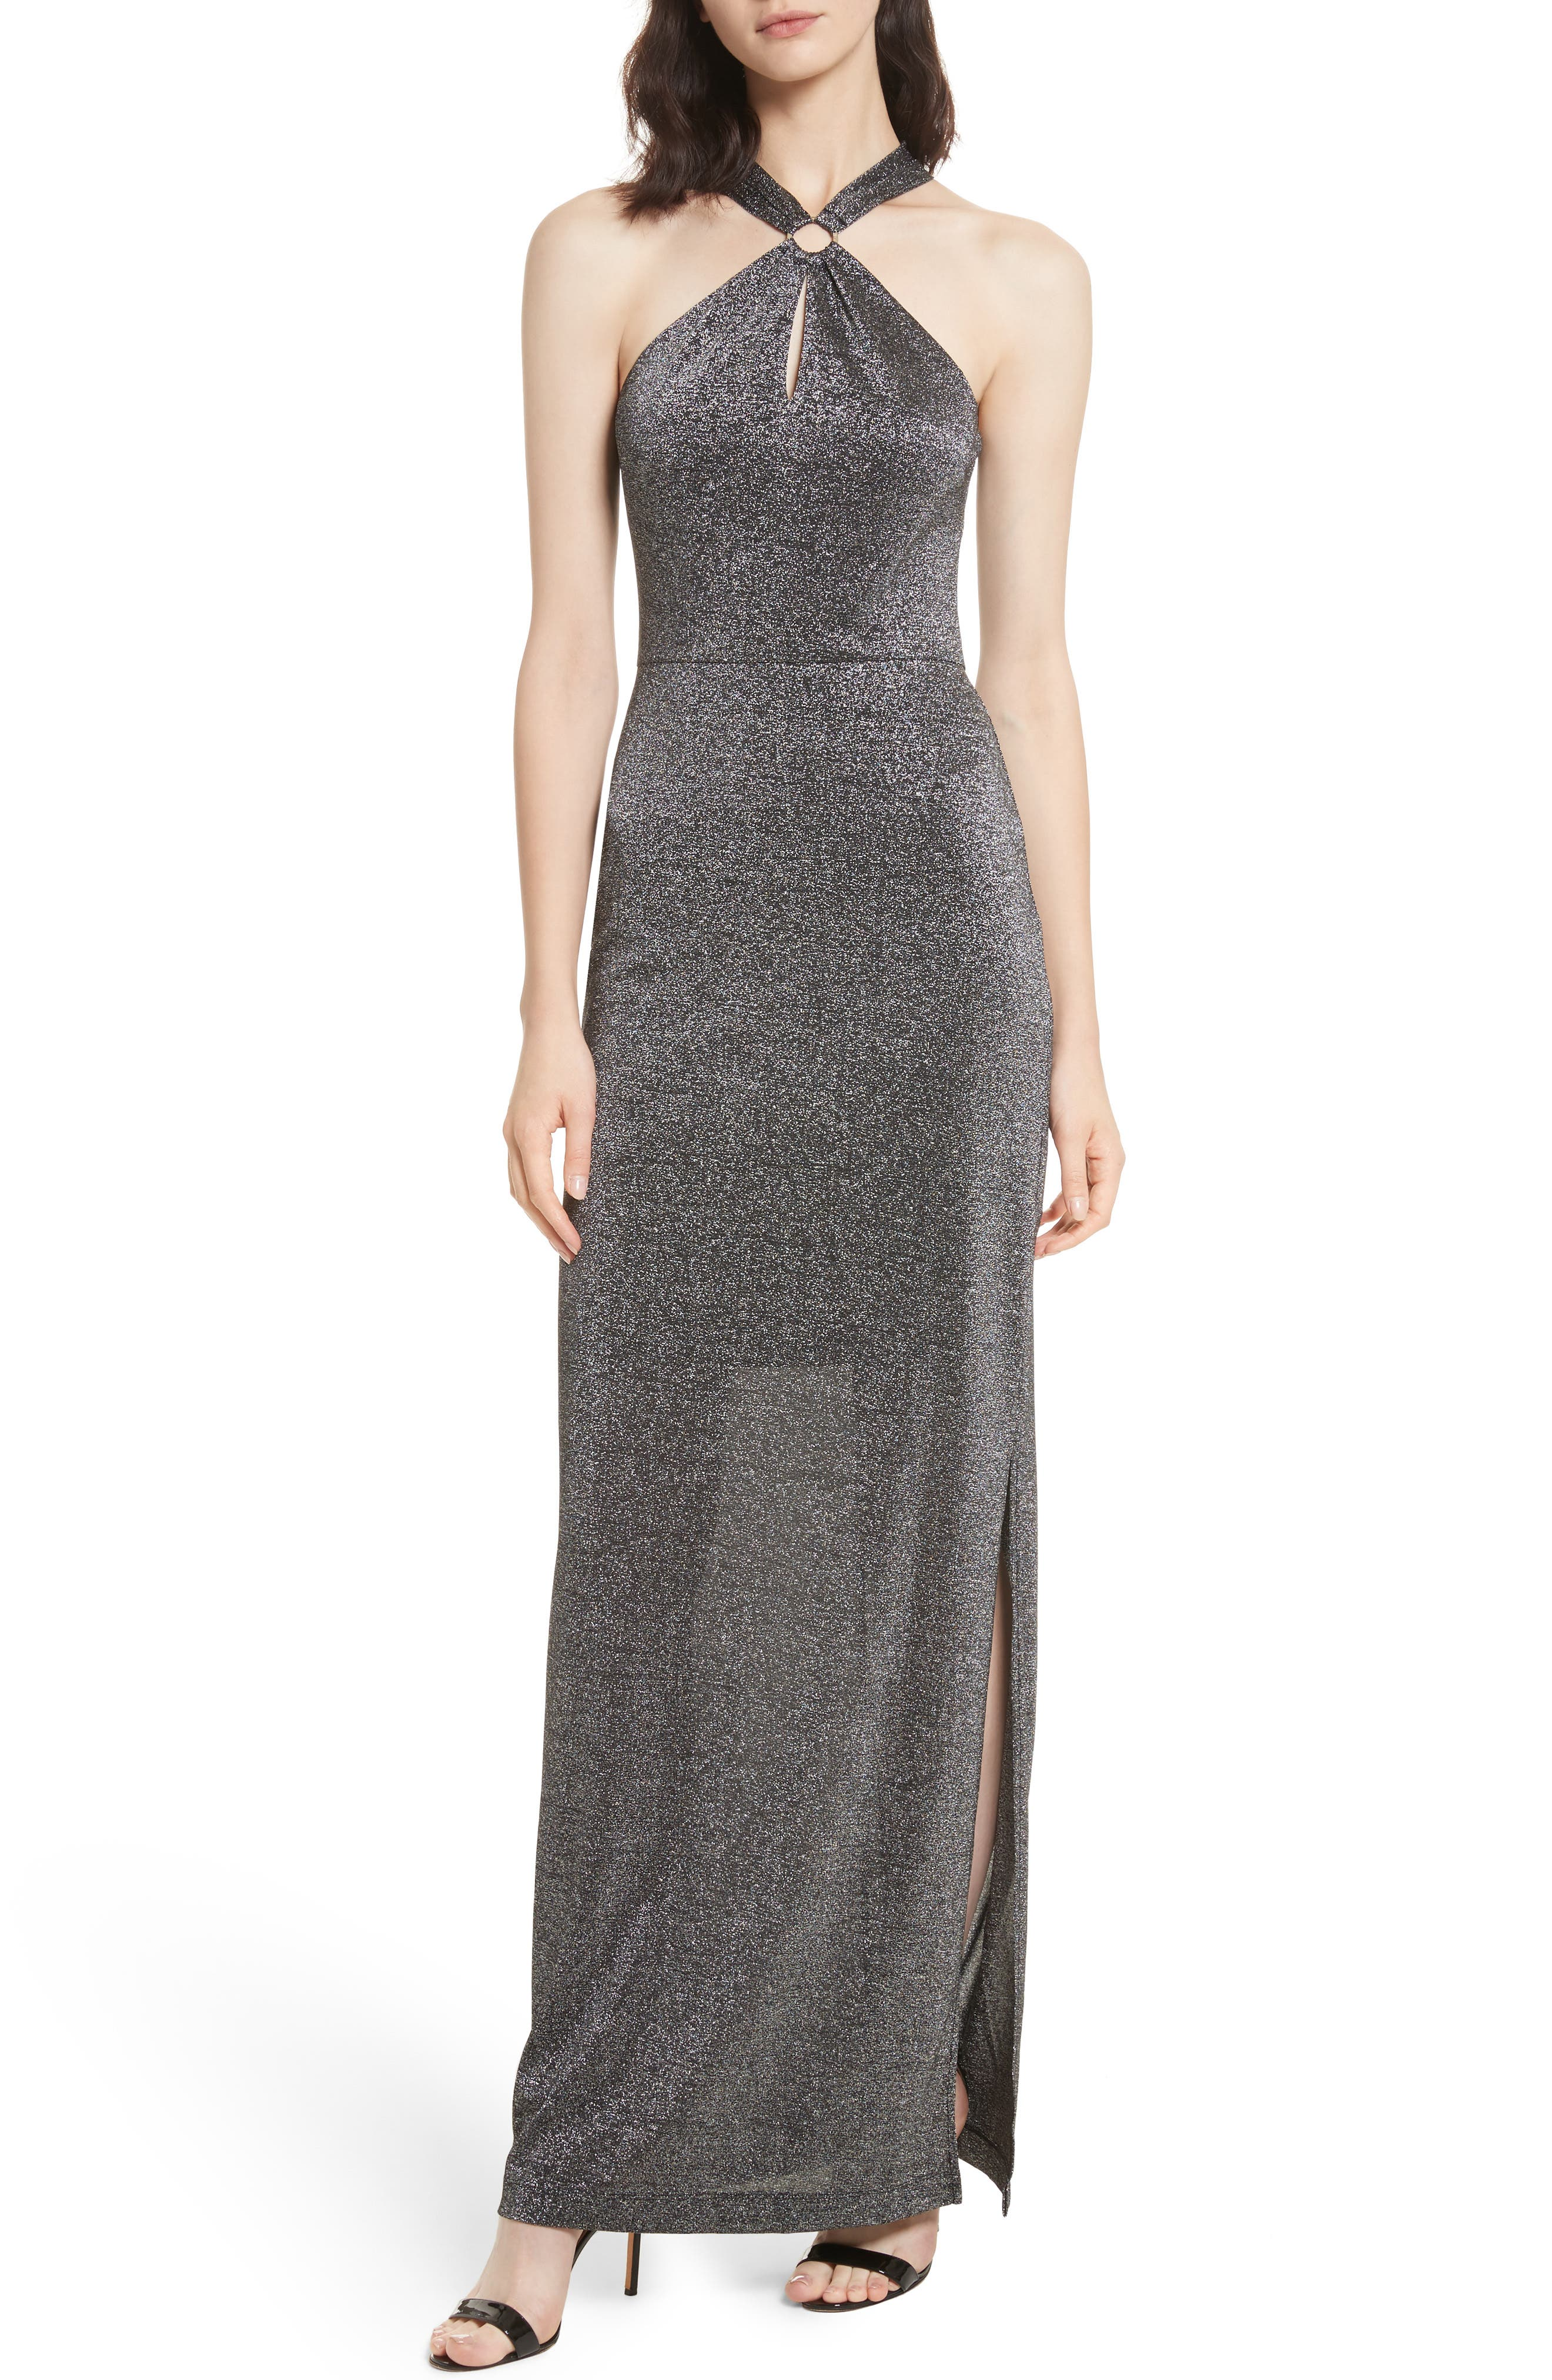 Alternate Image 1 Selected - Ted Baker London Metallic Knit Maxi Dress